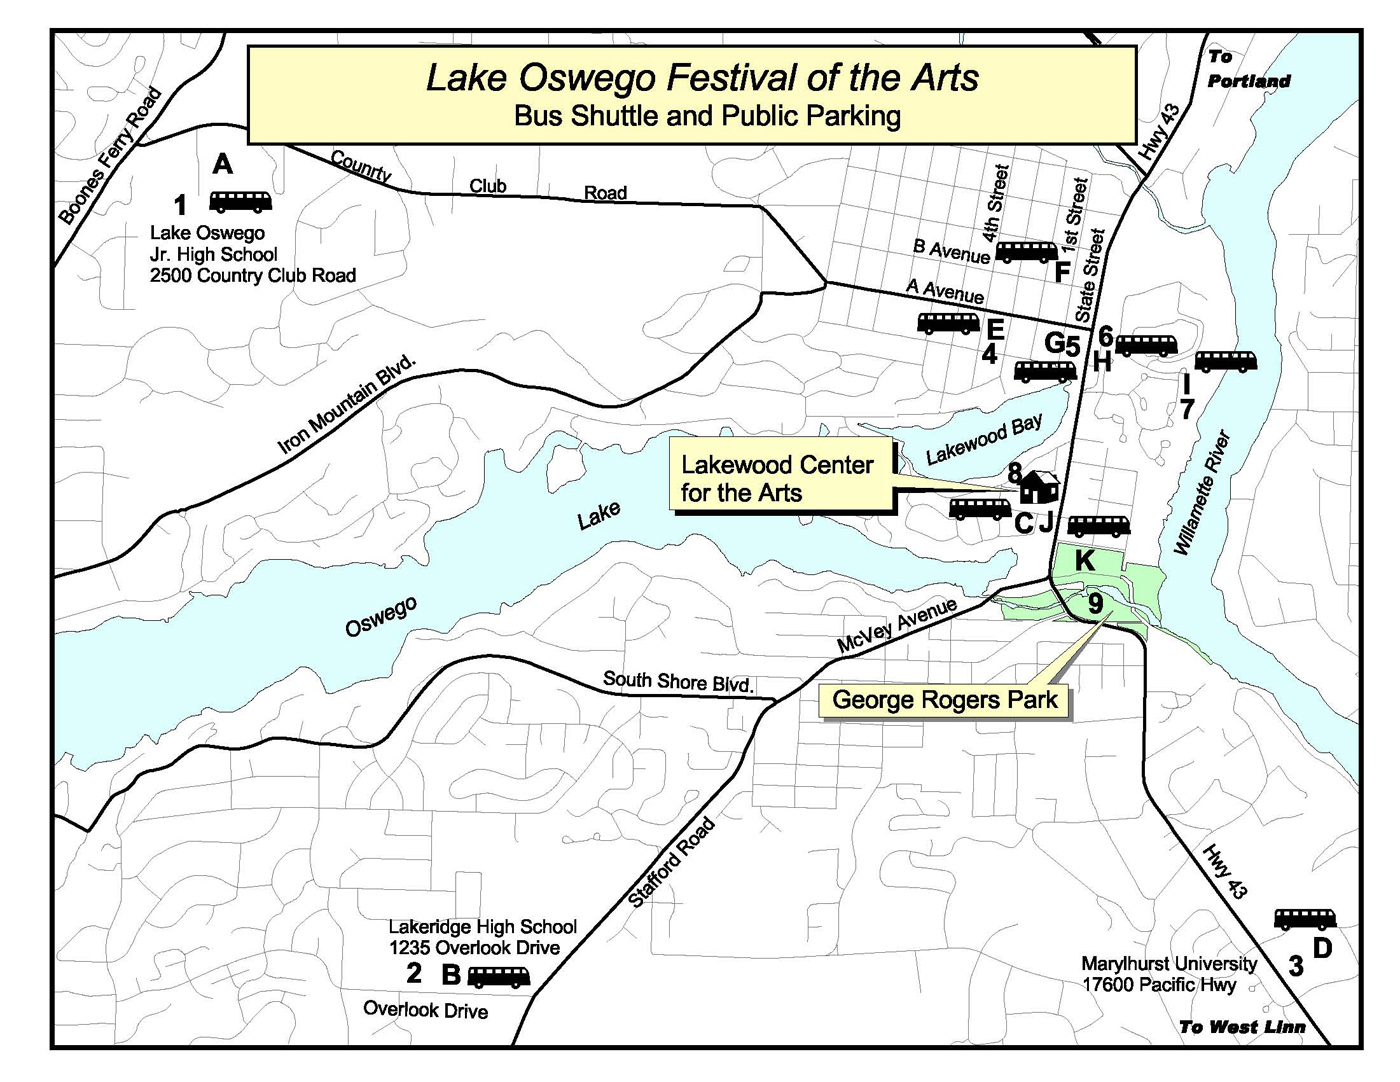 2009 Festival of Arts Shuttle Map